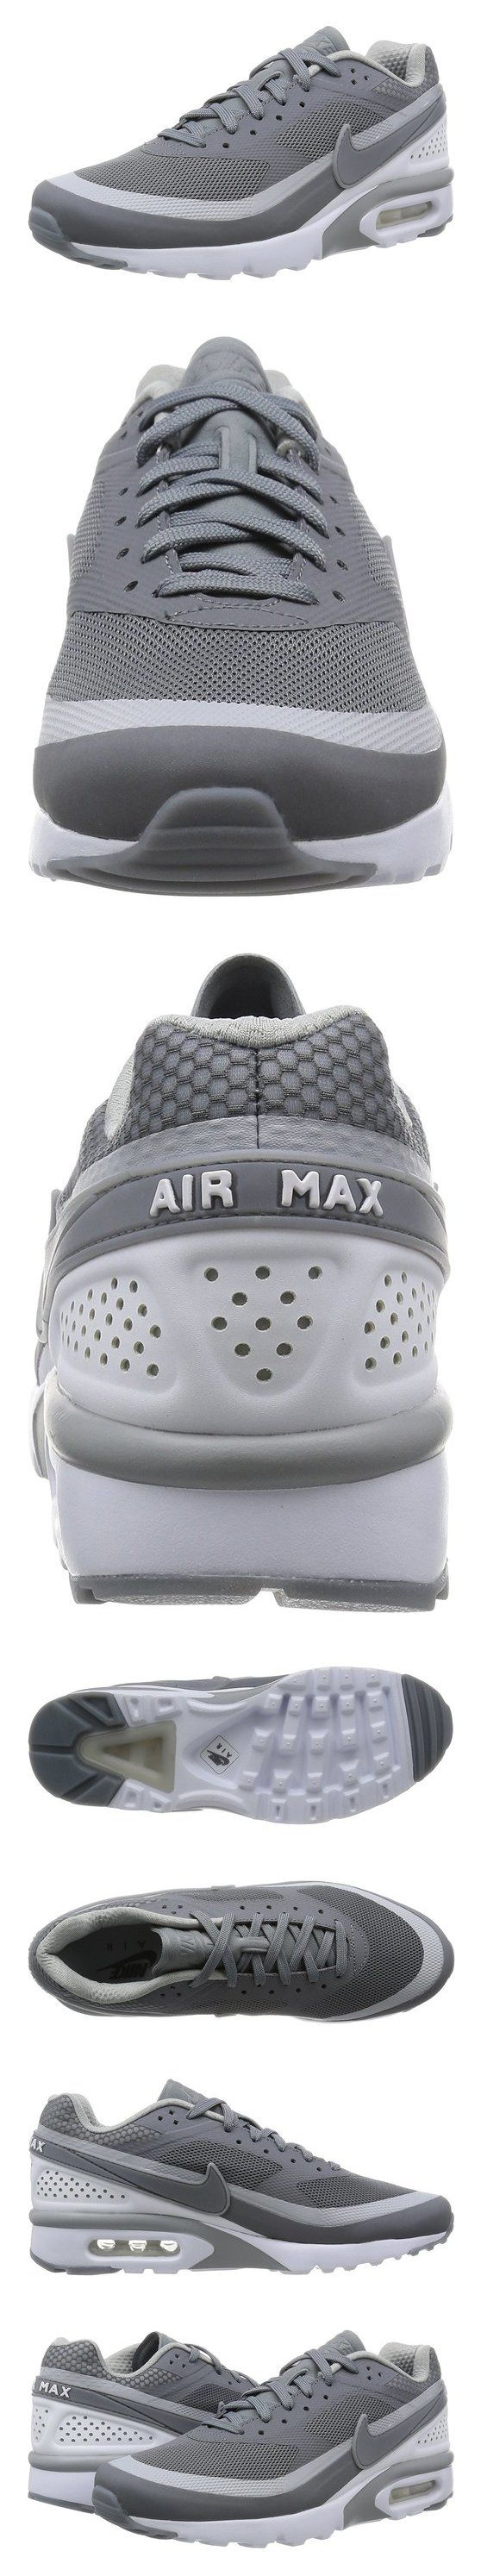 Nike Air Max BW Ultra Sneaker current model different colors, EU Shoe Size:EUR 39 #shoes #nike